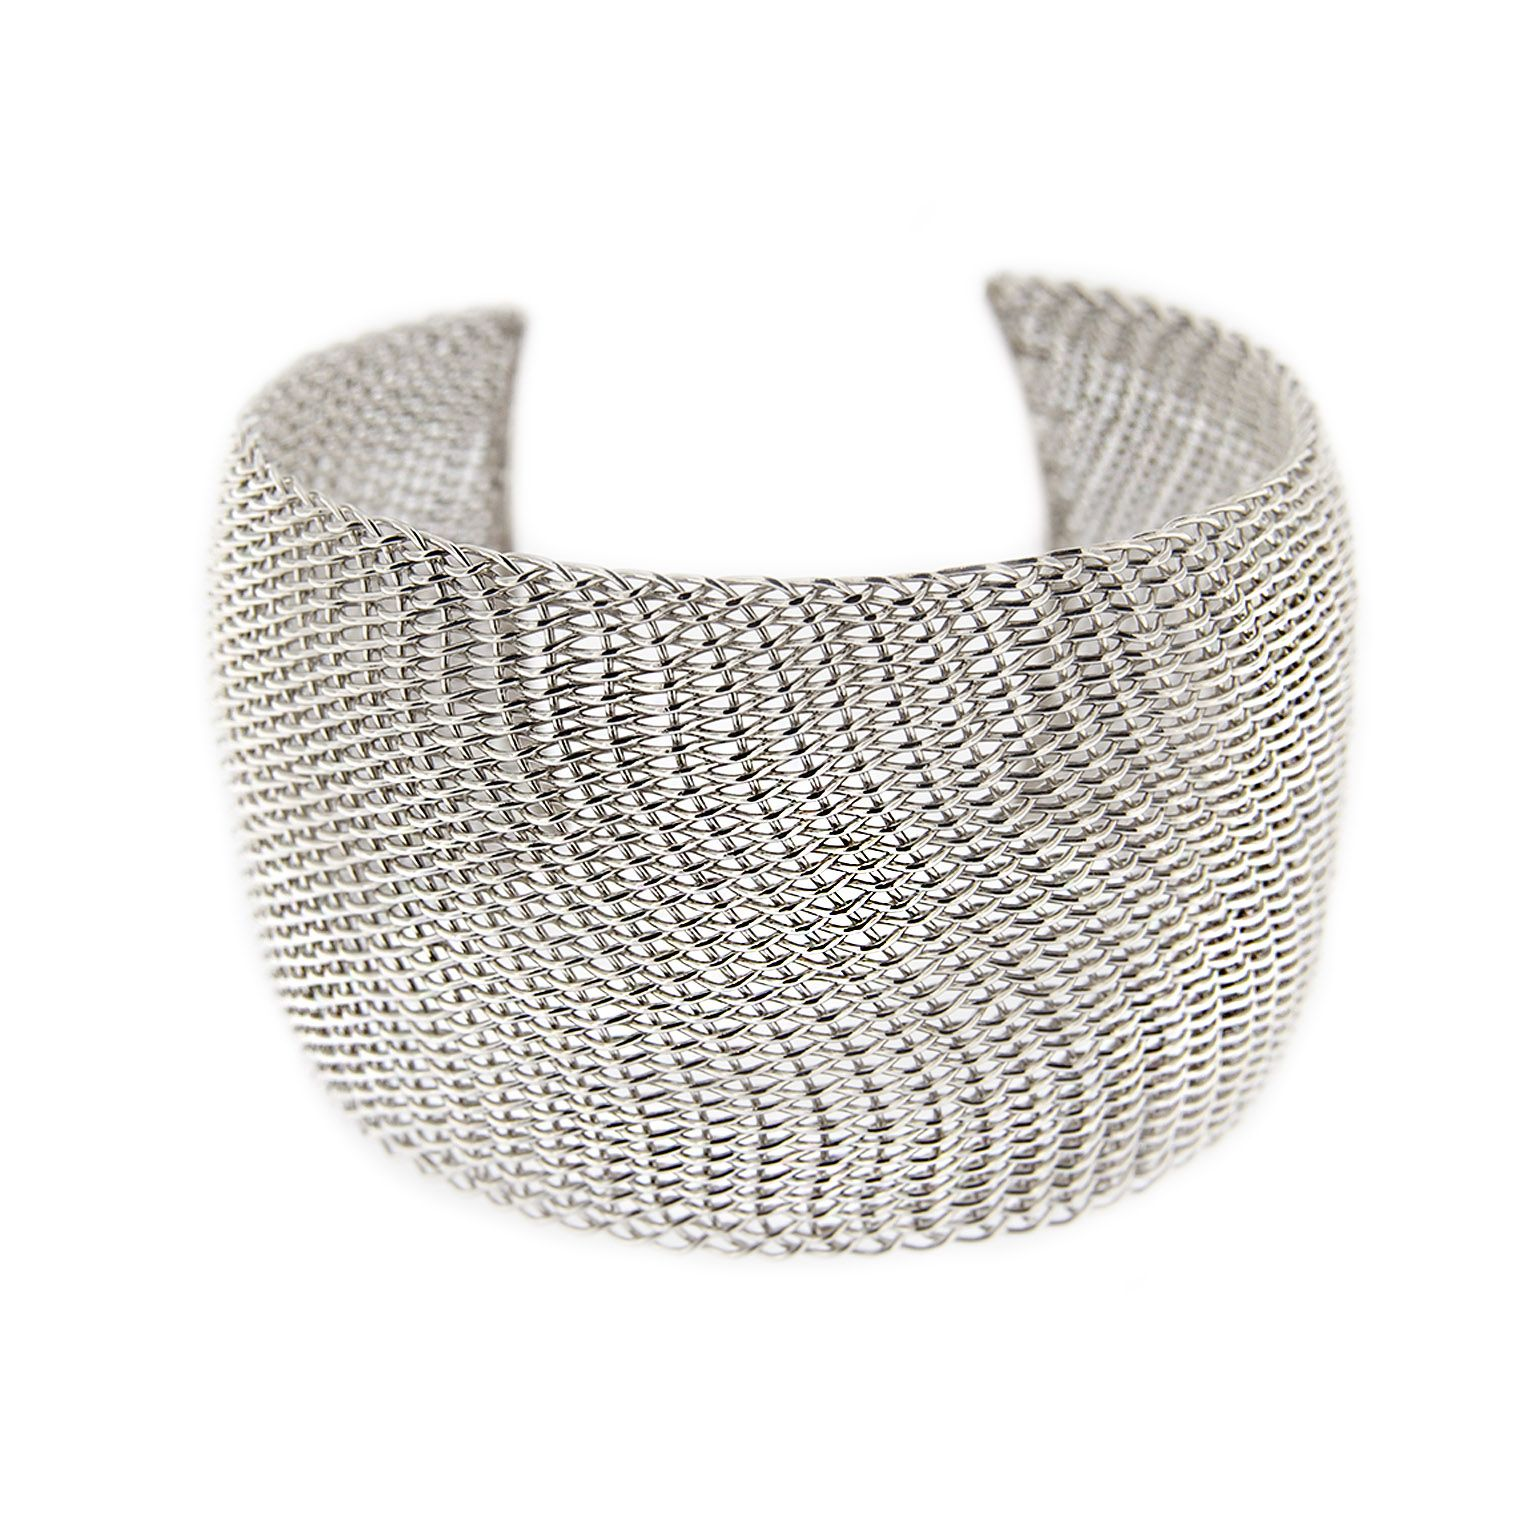 Jona design collection, hand crafted in Italy, twisted wire gold ...